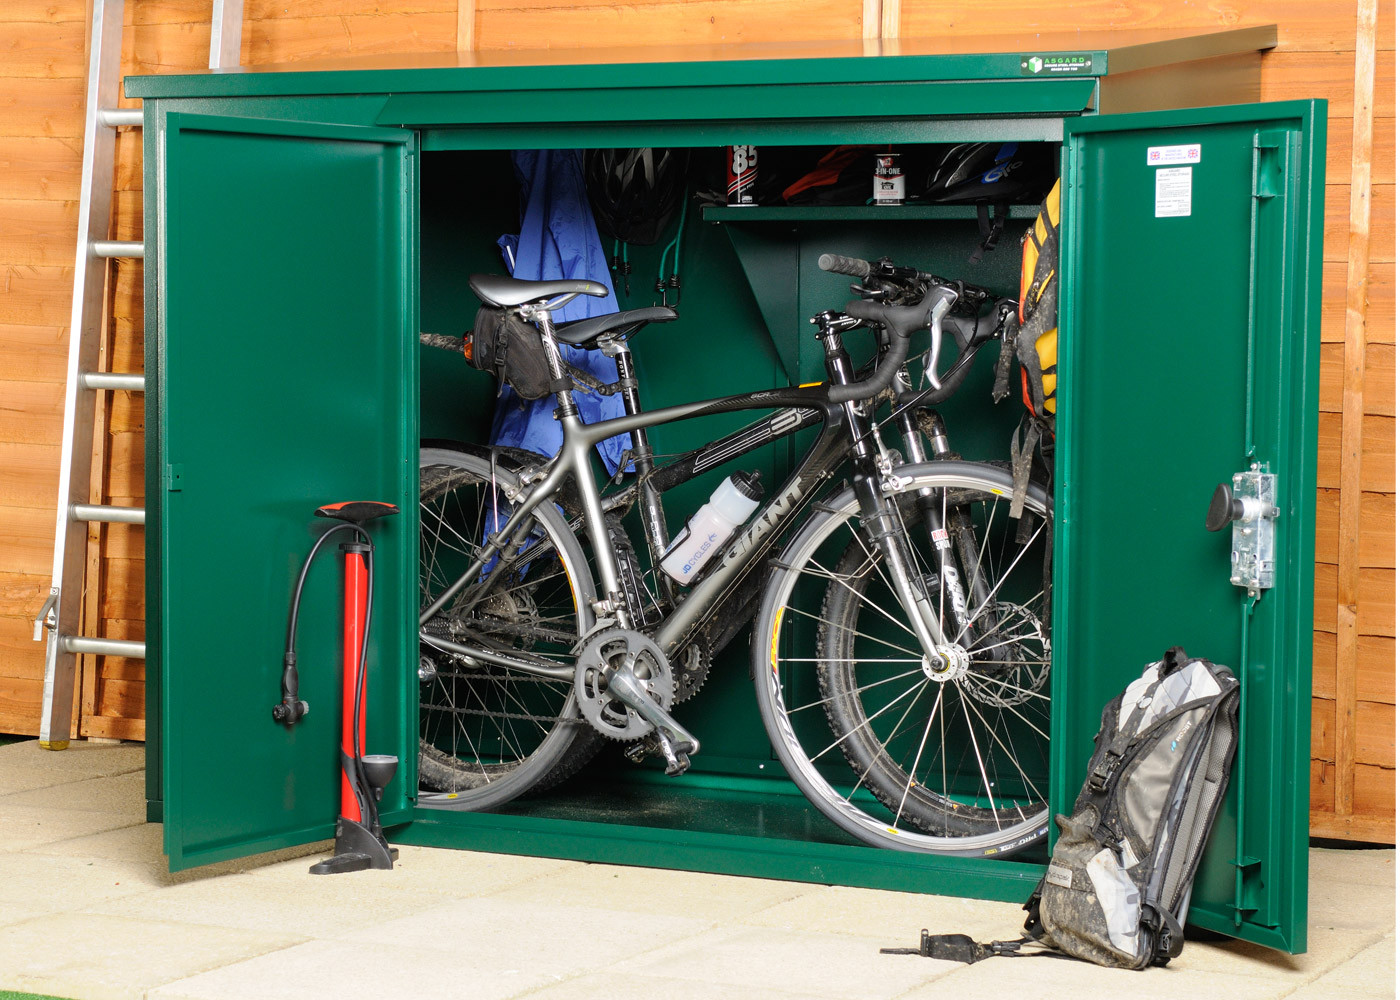 bike storage shed metal bike shed, storage for storing 3 bikes ... JCWHBHD